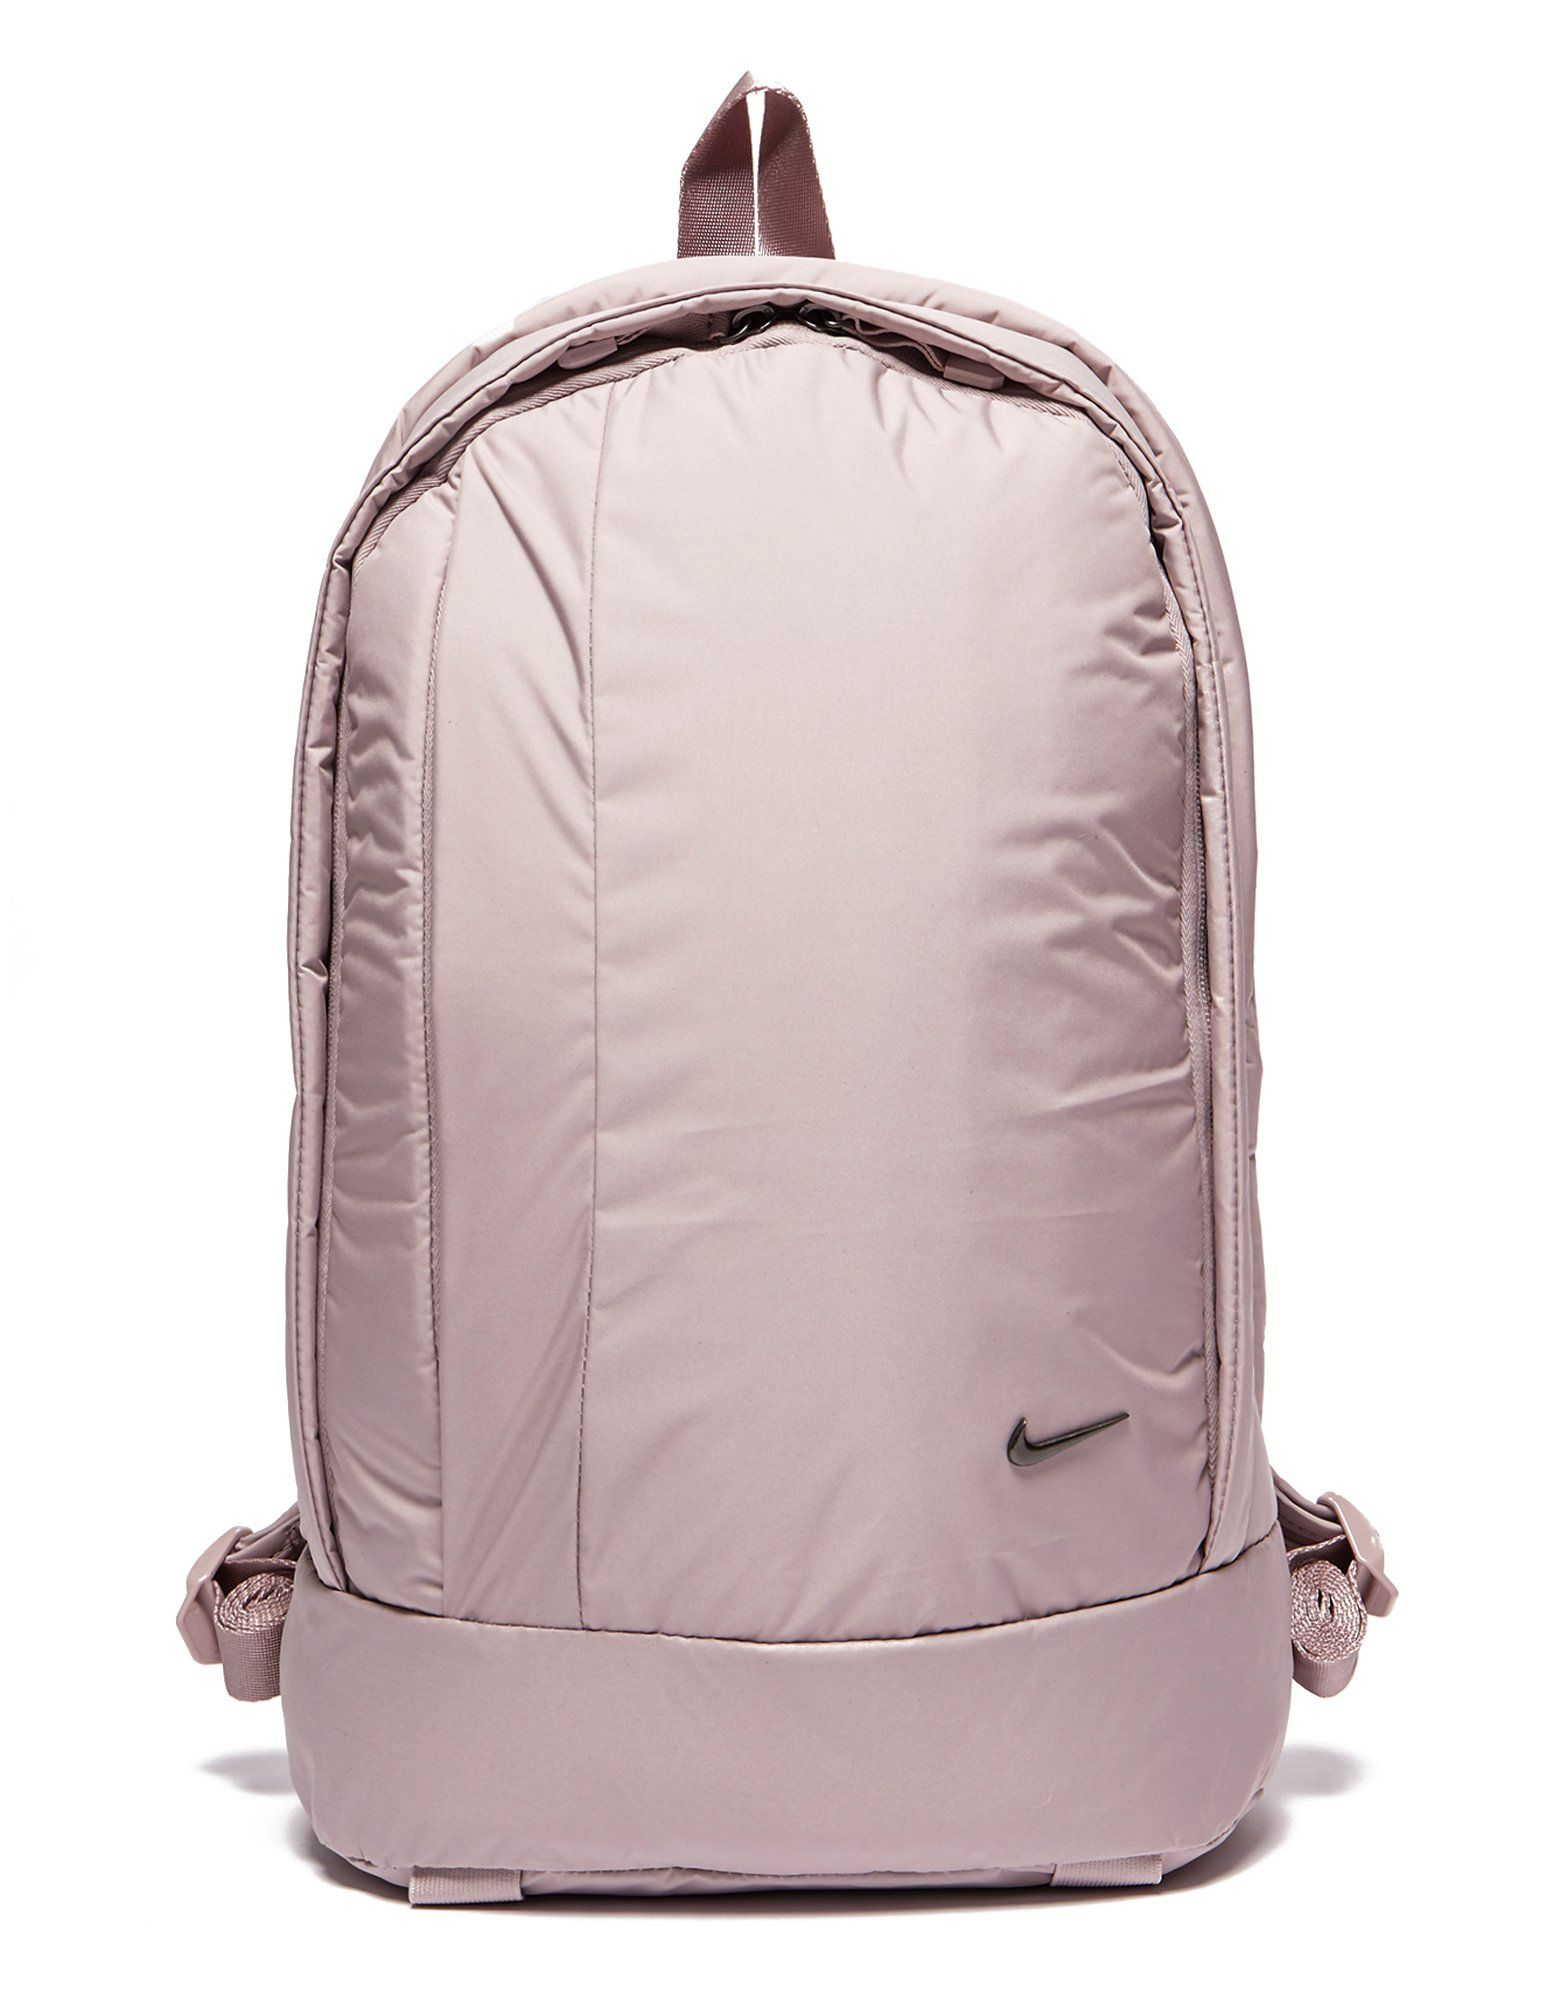 nike legend backpack jd sports. Black Bedroom Furniture Sets. Home Design Ideas